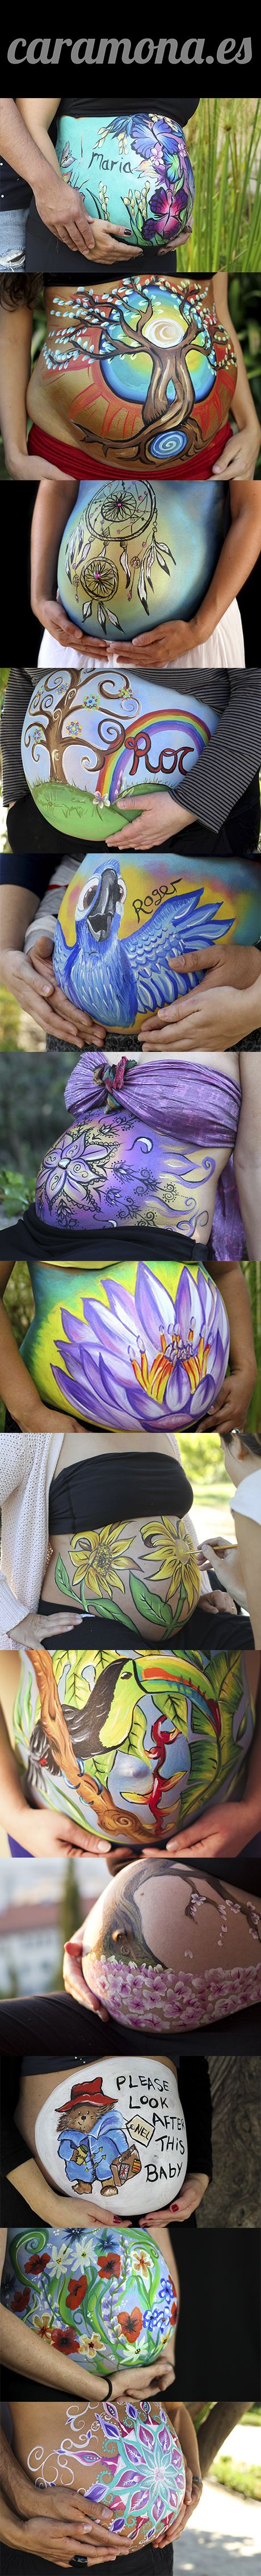 13 Belly painting ideas!!!!! Belly painting en Barcelona con @CaraMona_Bodypaint! Bodypaint para Embarazadas, pintura barriga para embarazada. Fotos embarazadas. Sesión de fotos para el embarazo Barcelona. Contacta Katie en www.caramona.es Wassap 645135188